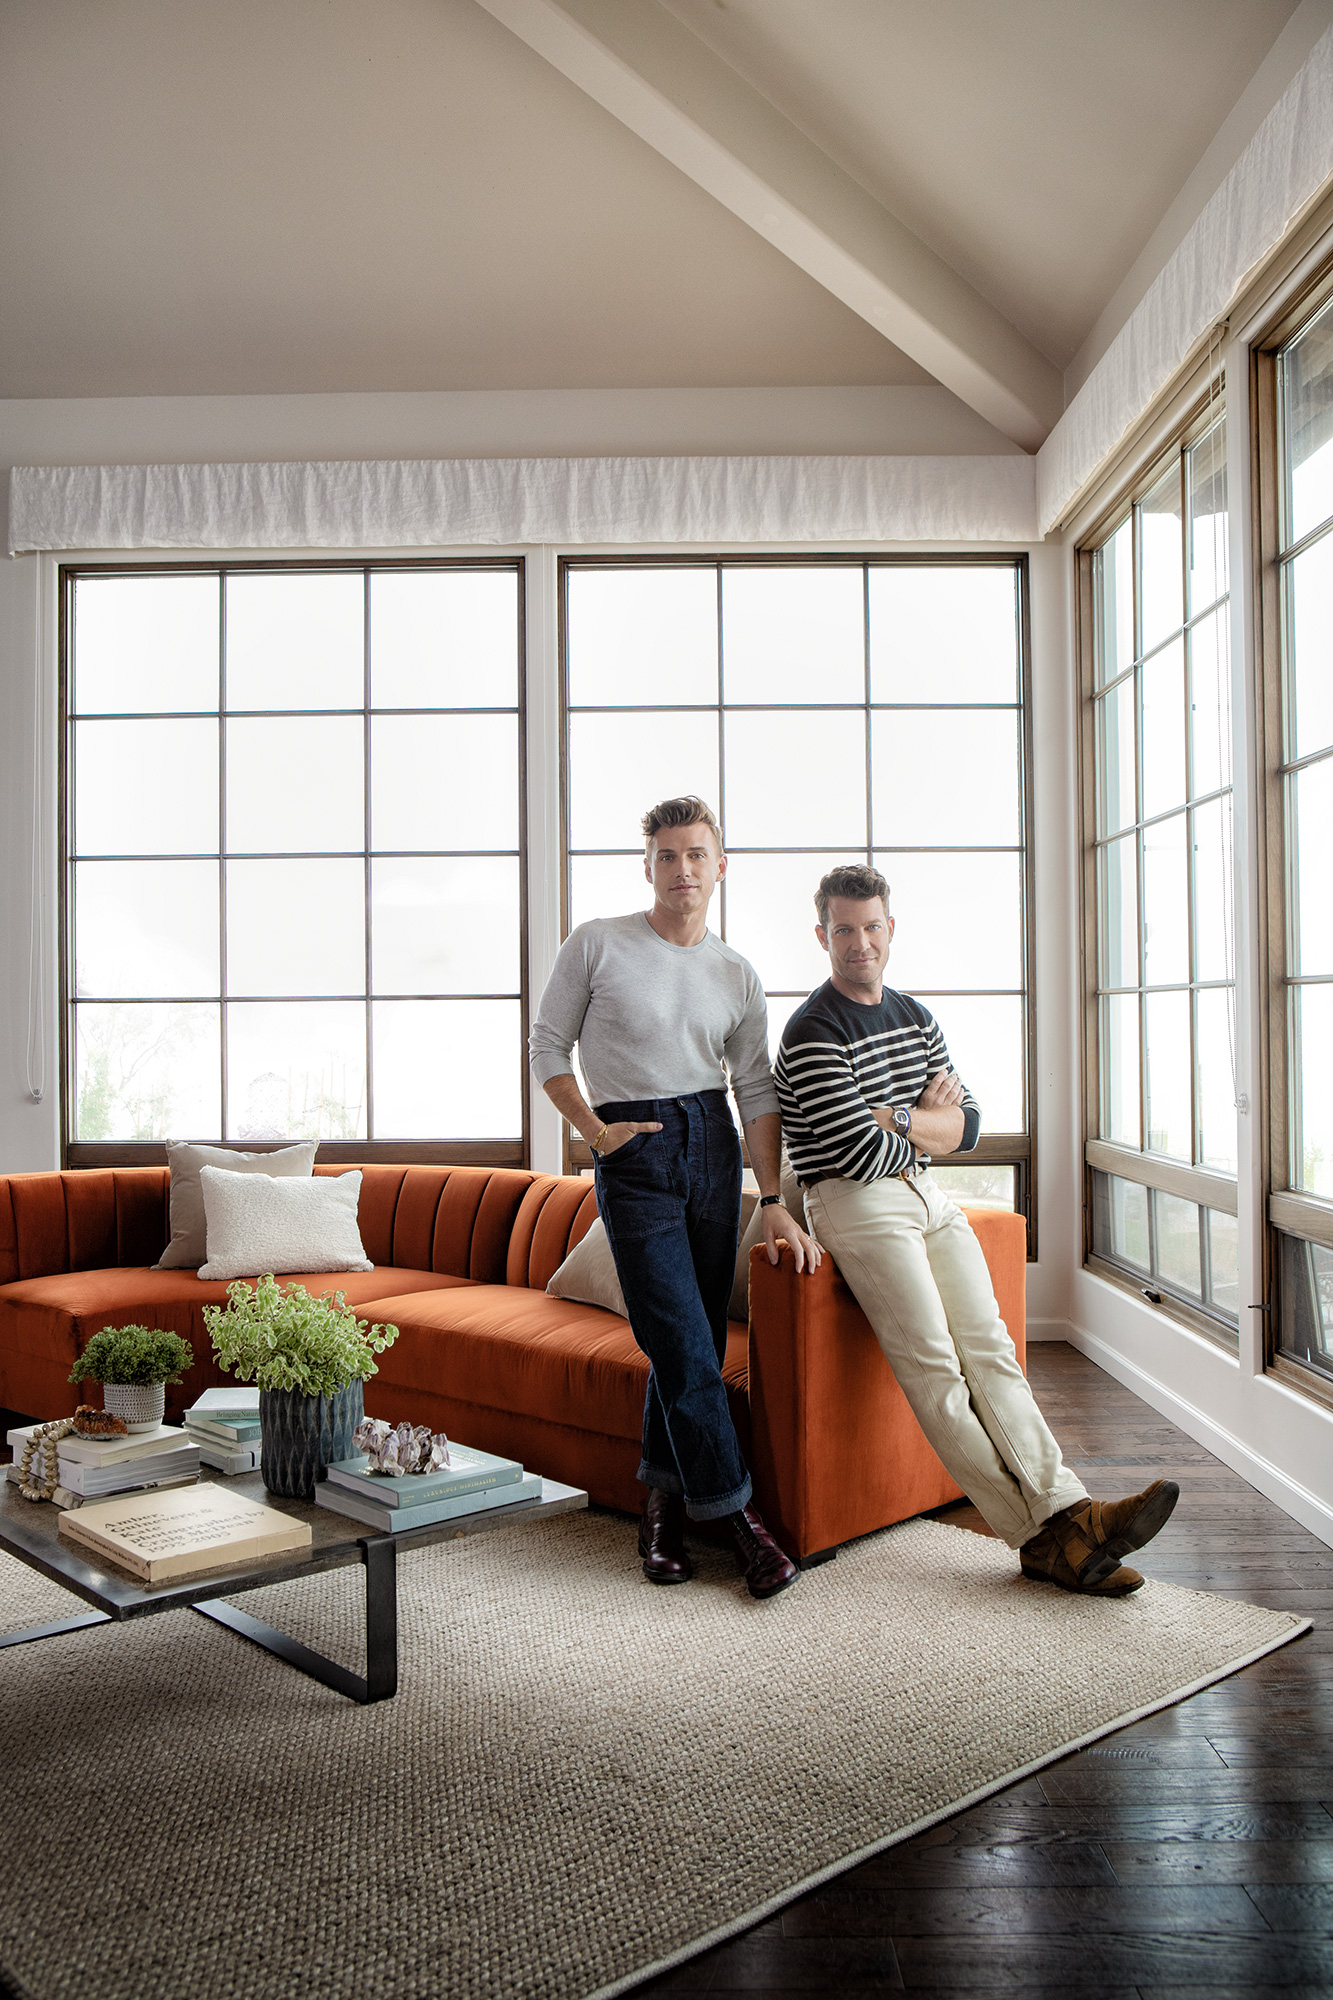 check out these major bargains winsome accent table with drawer nate berkus jeremiah brent living spaces daniel black finish and debut furniture line inspired their own home